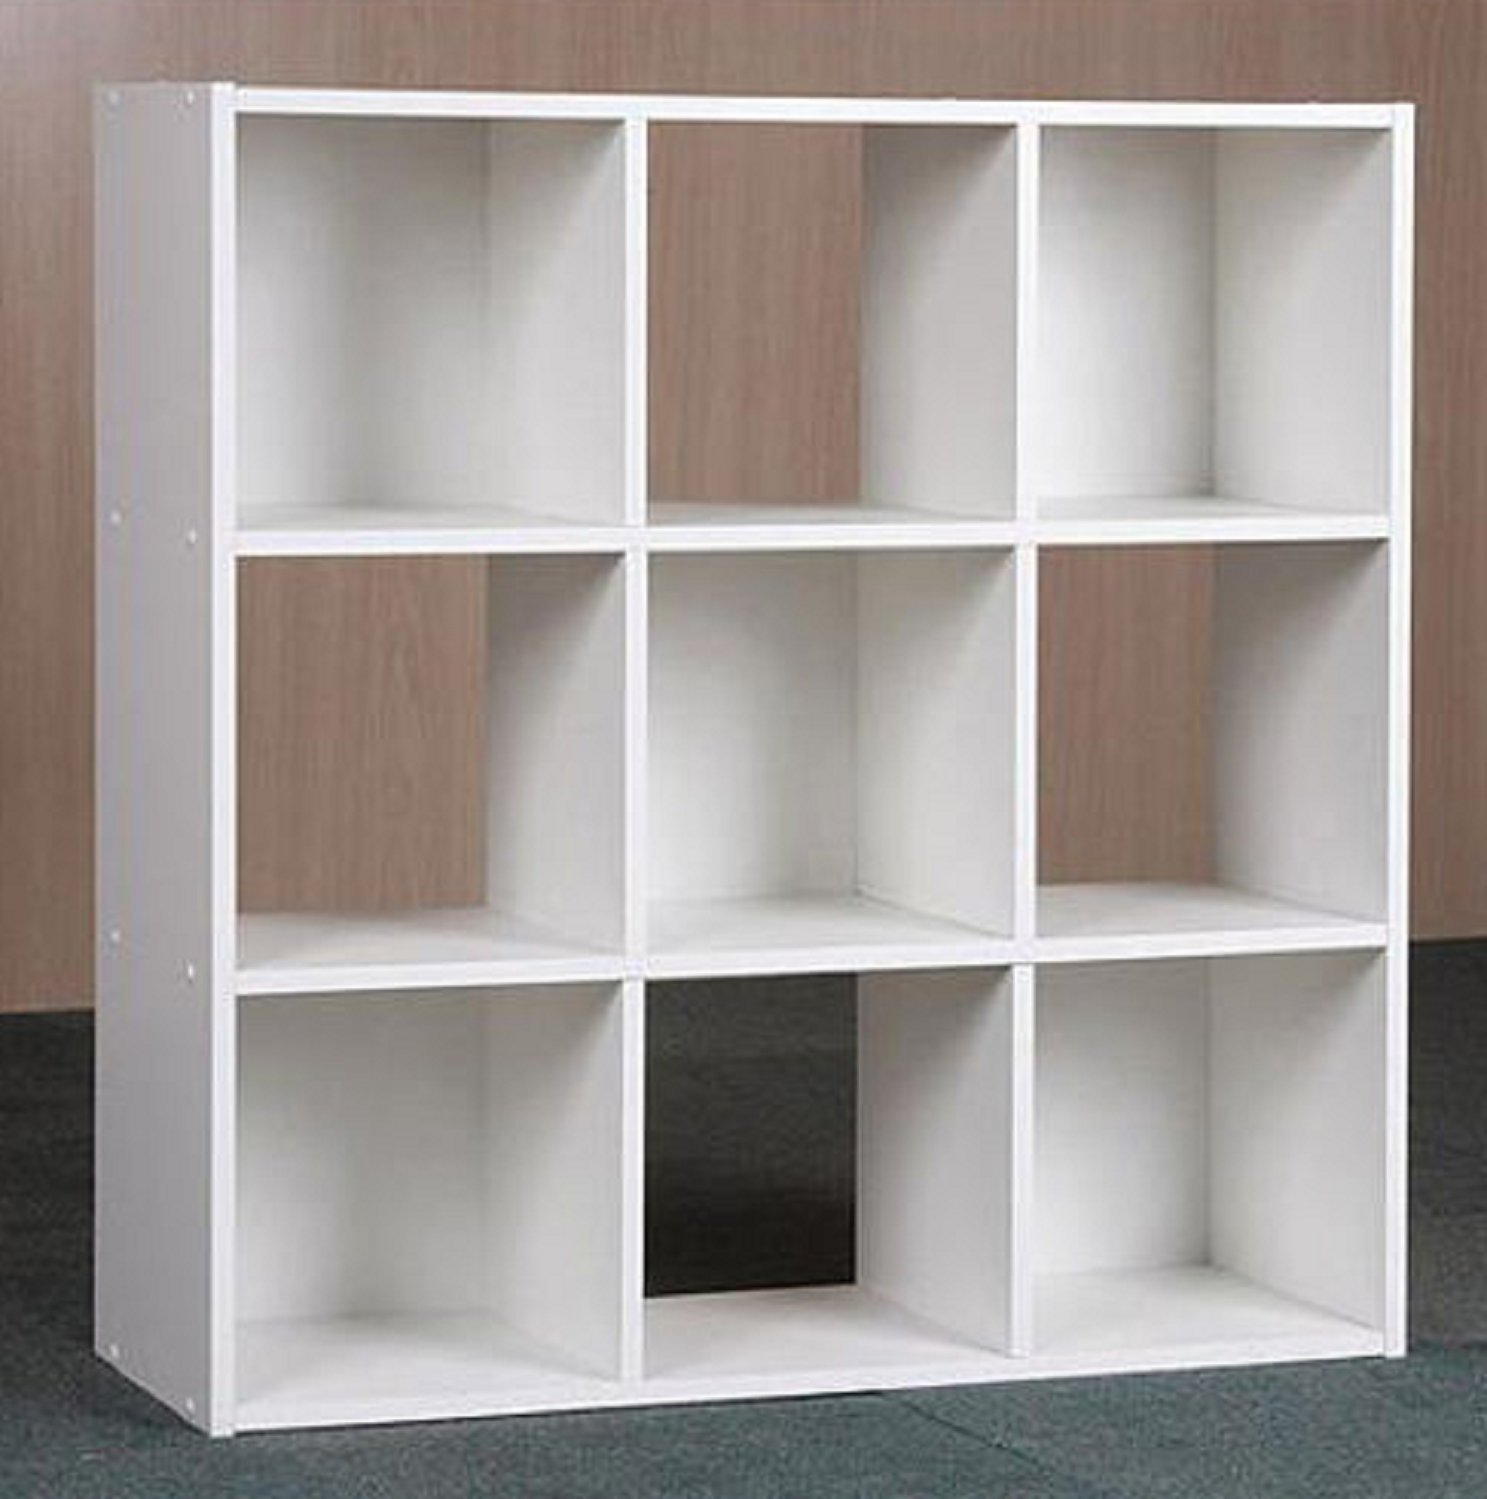 USA Premium Store 9 Cube Organizer Bookcase Storage Tower Shelves White Kids or Living Room